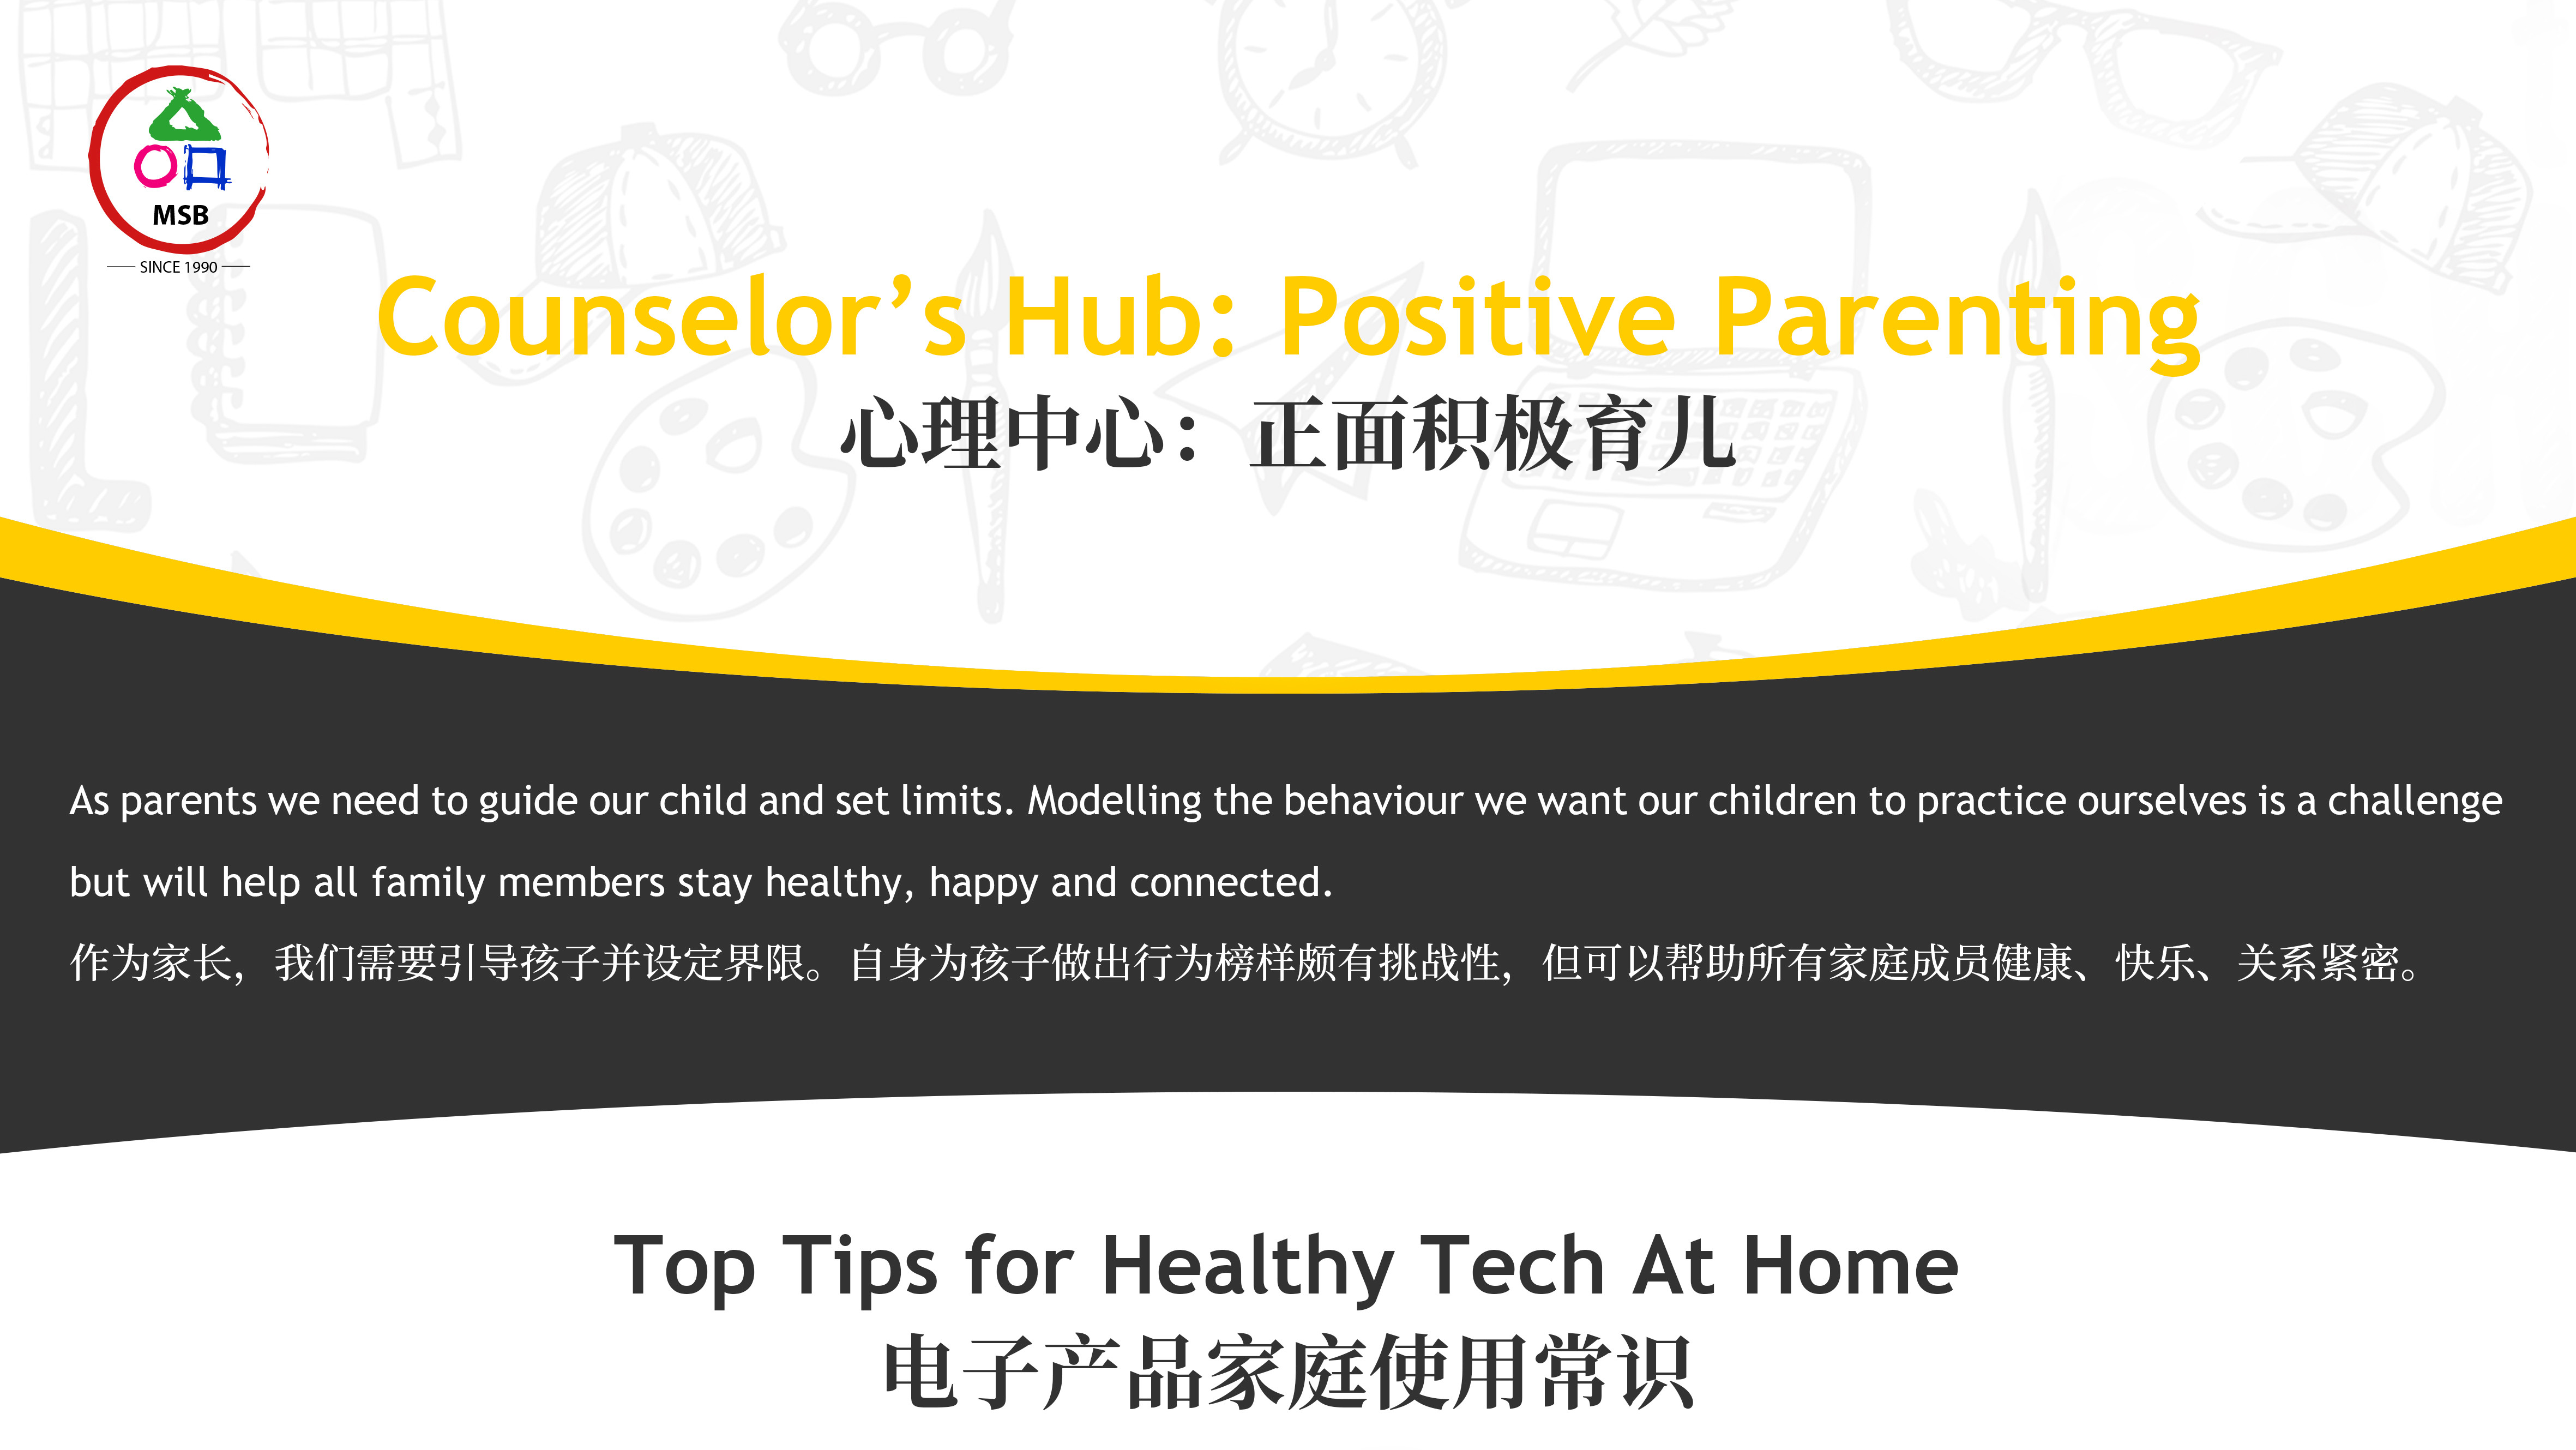 Counselor's Hub: Tips for Healthy Tech at Home